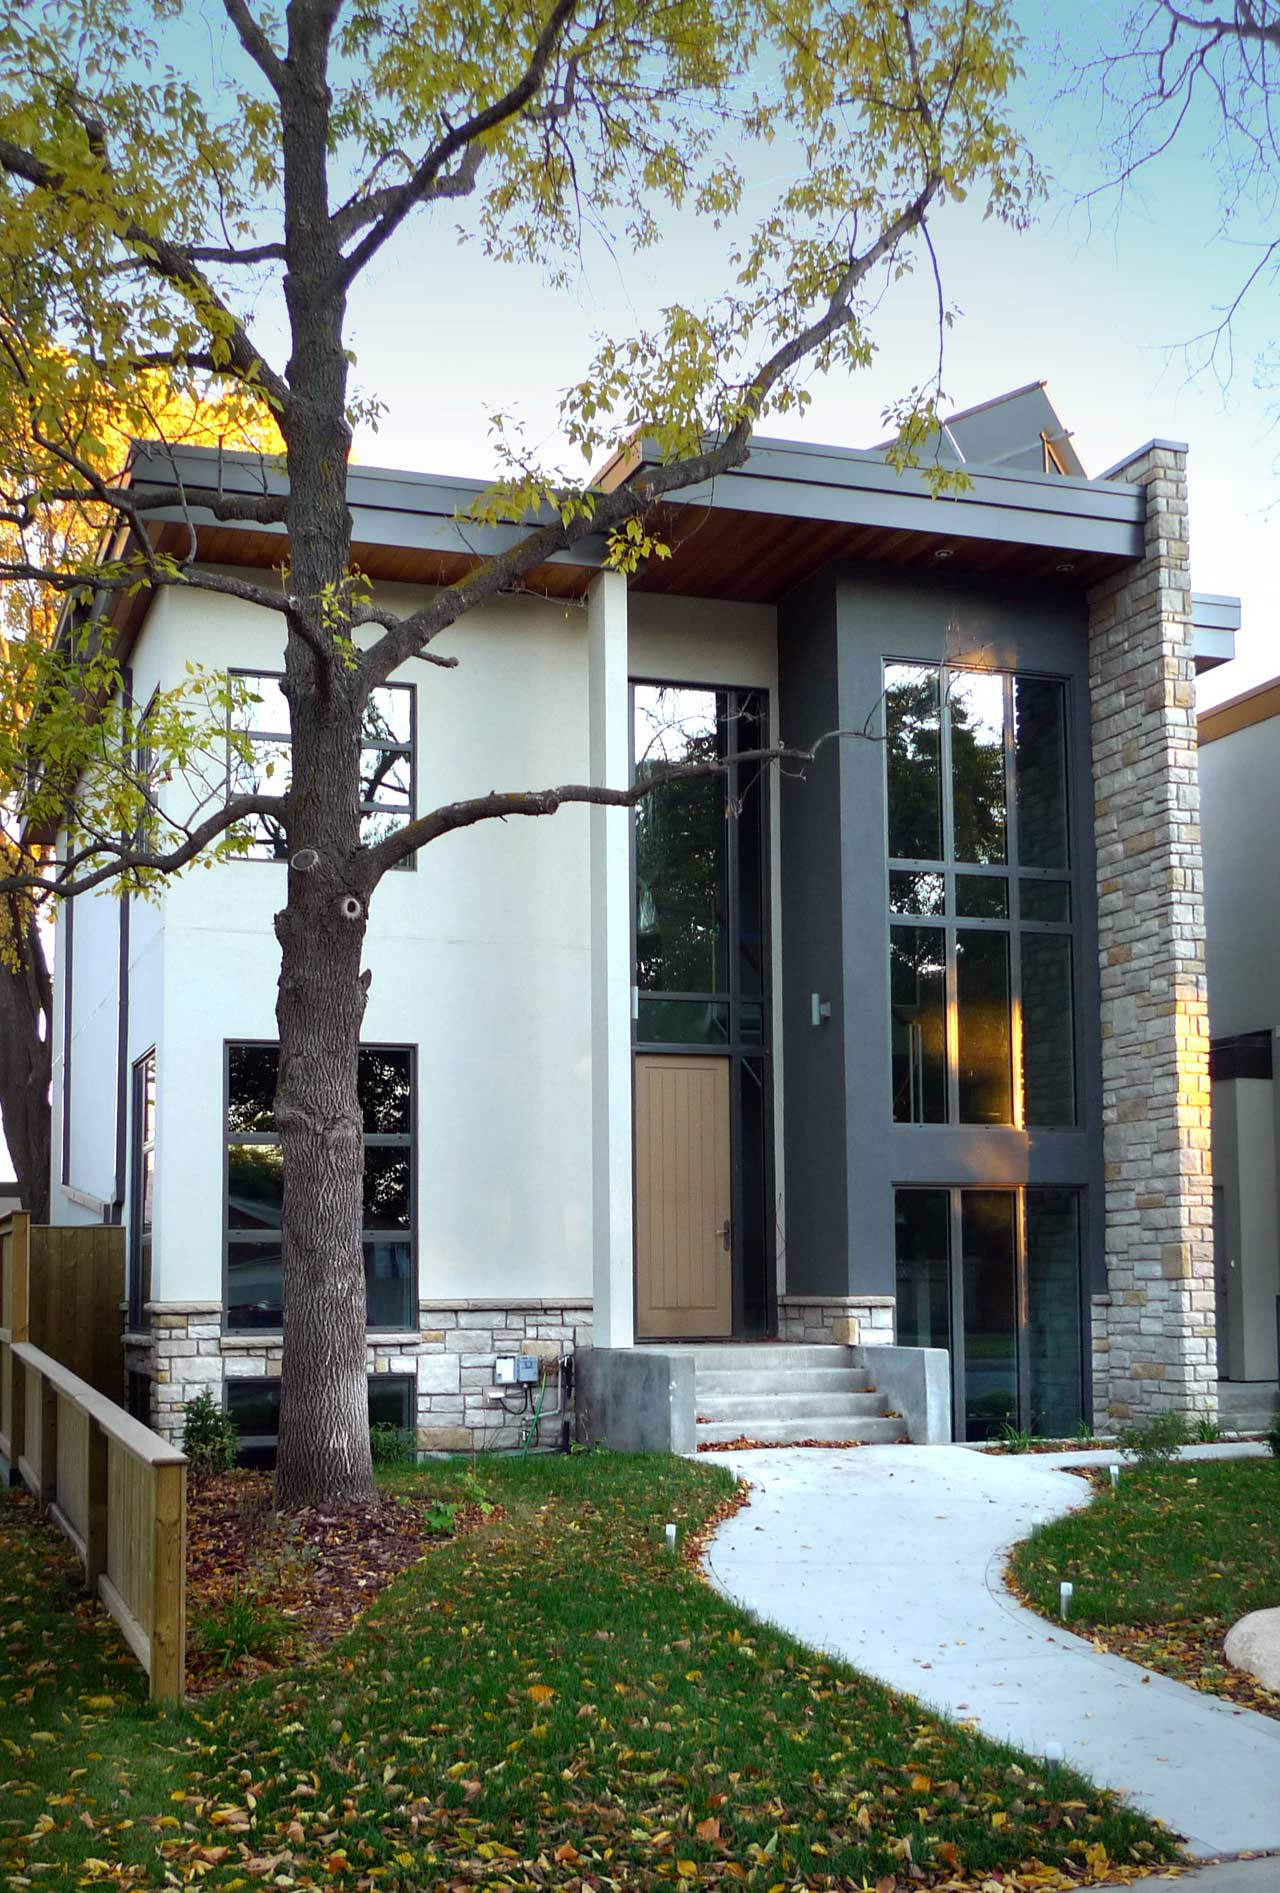 2. NORTH PARK RESIDENCE